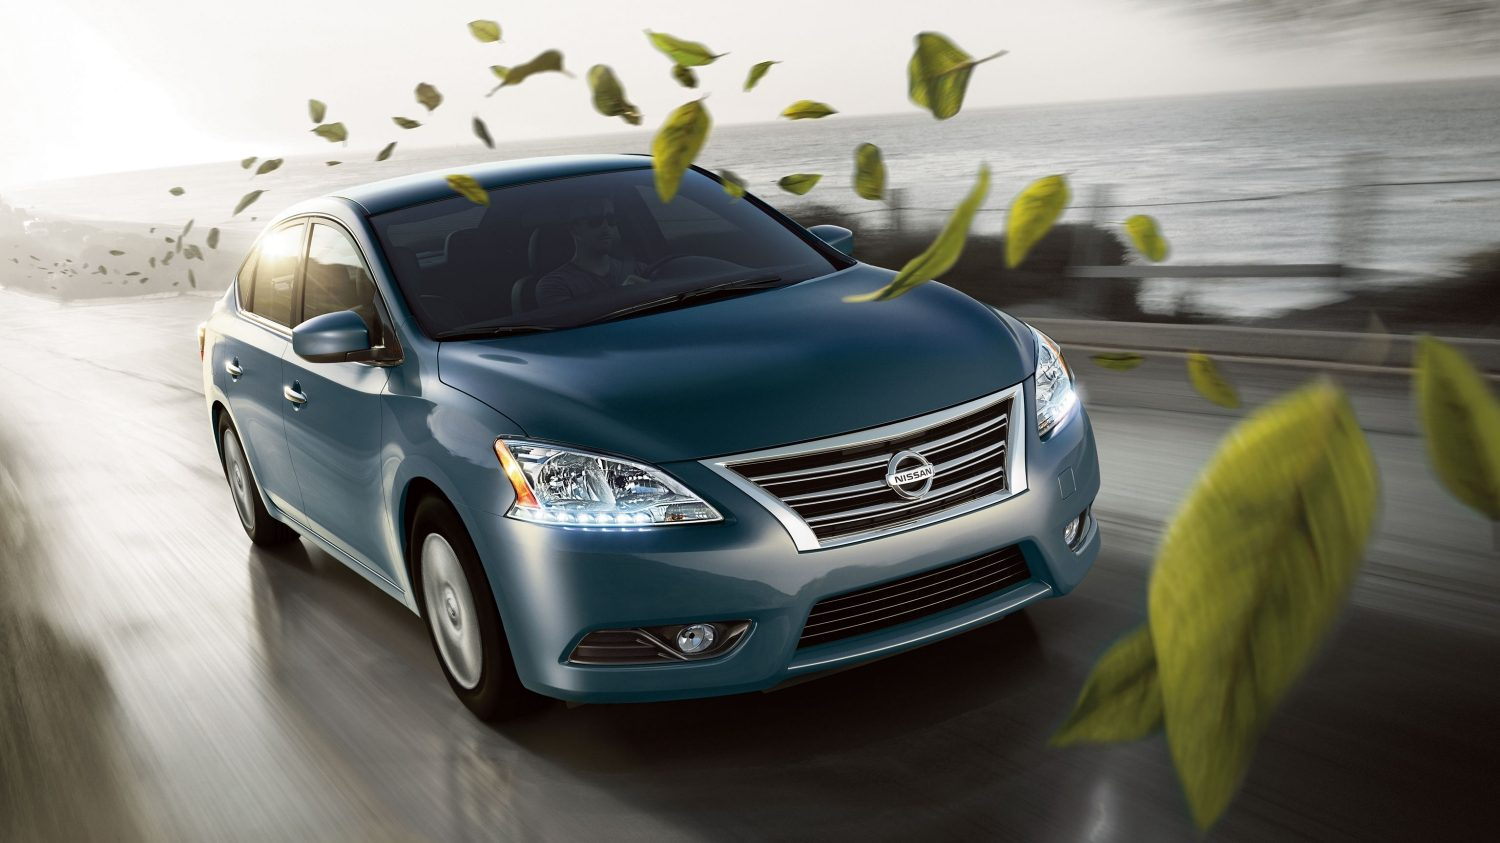 Sentra front driving with leaves.